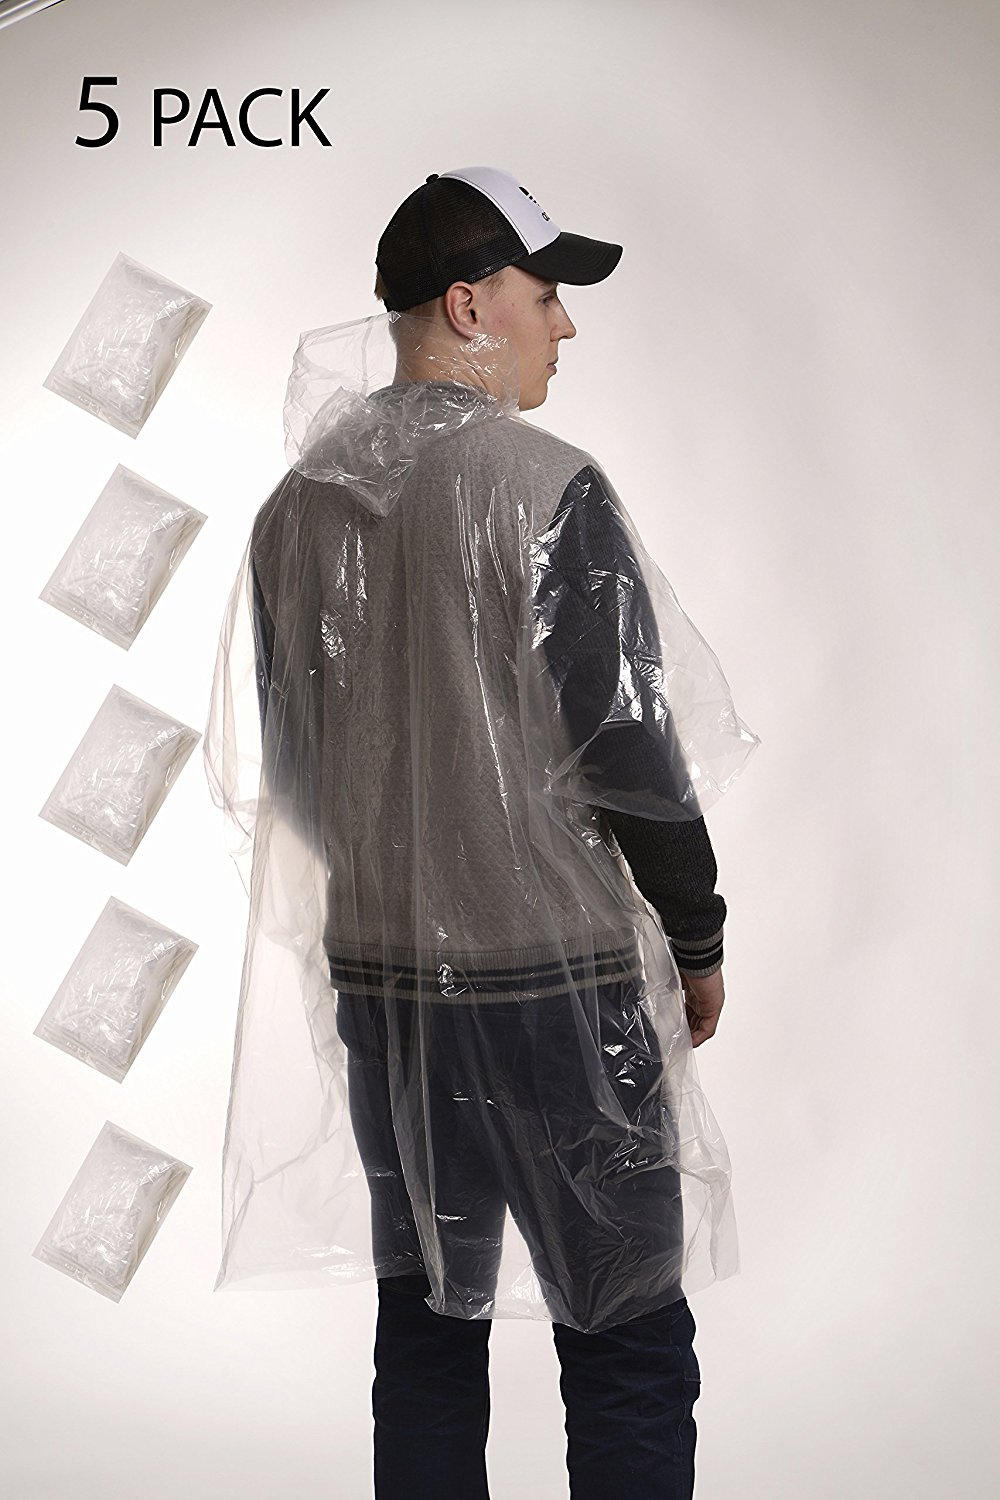 Disposable Emergency Rain Poncho with Hood for Adults 5 Pack Best for Rainy Days, Live Sports, Camping, Fishing,... by